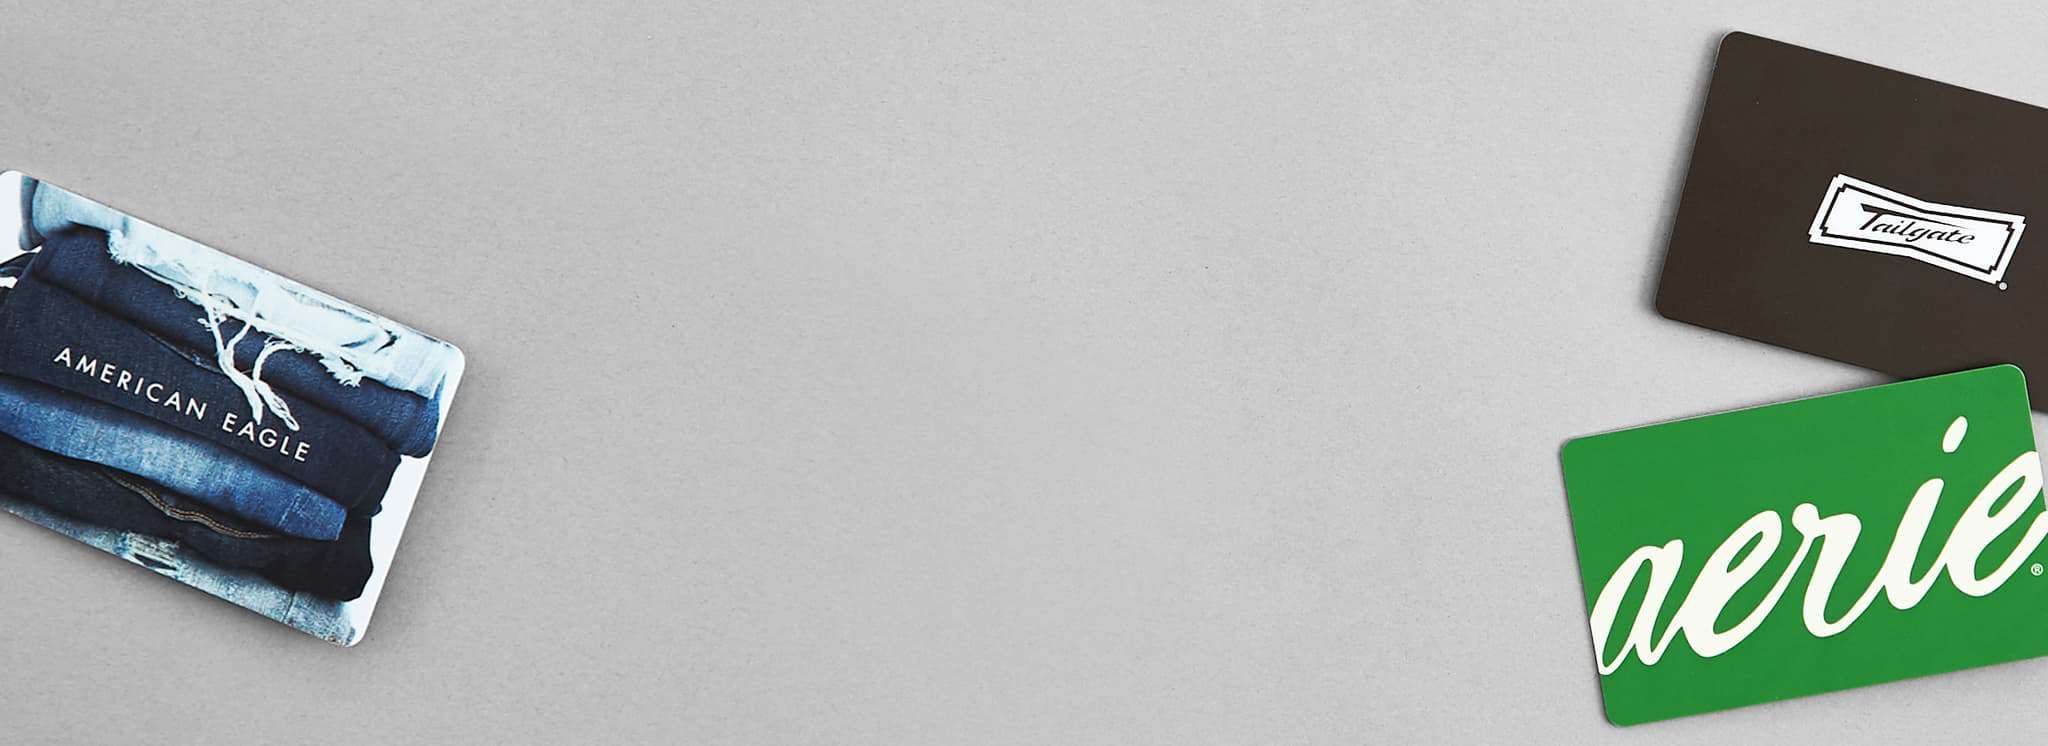 grey giftcard background